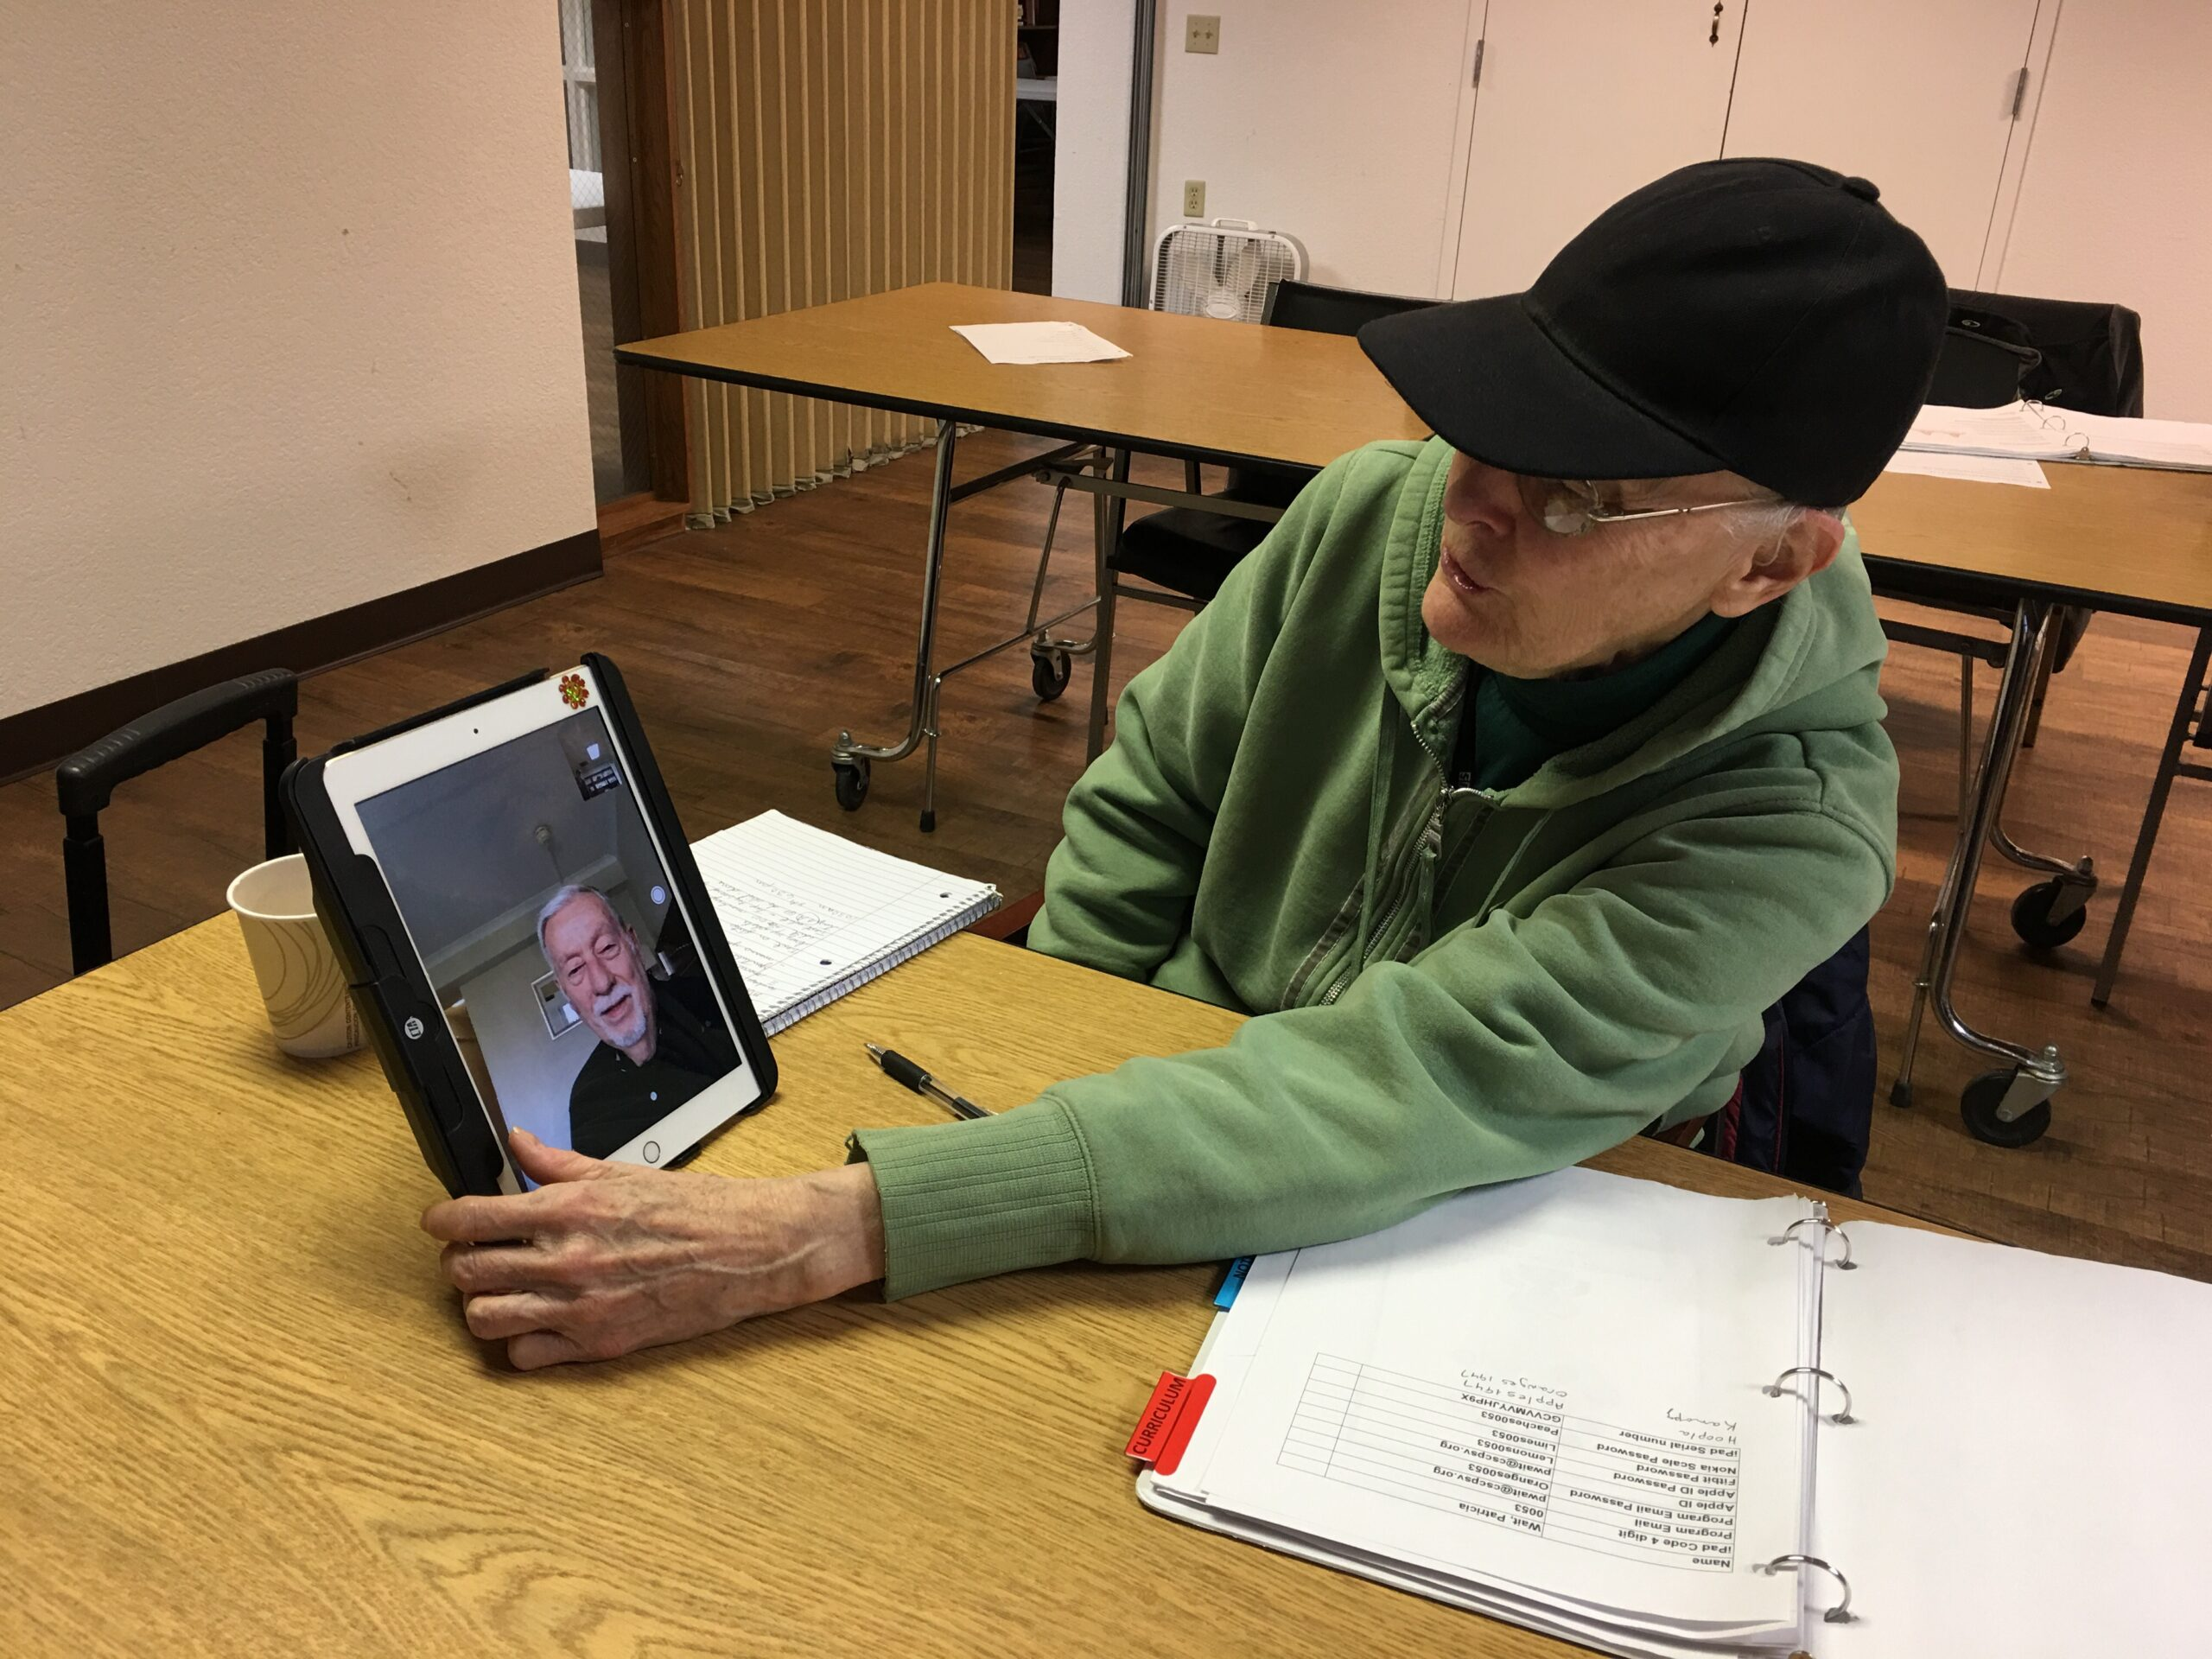 Staff and seniors virtually connect